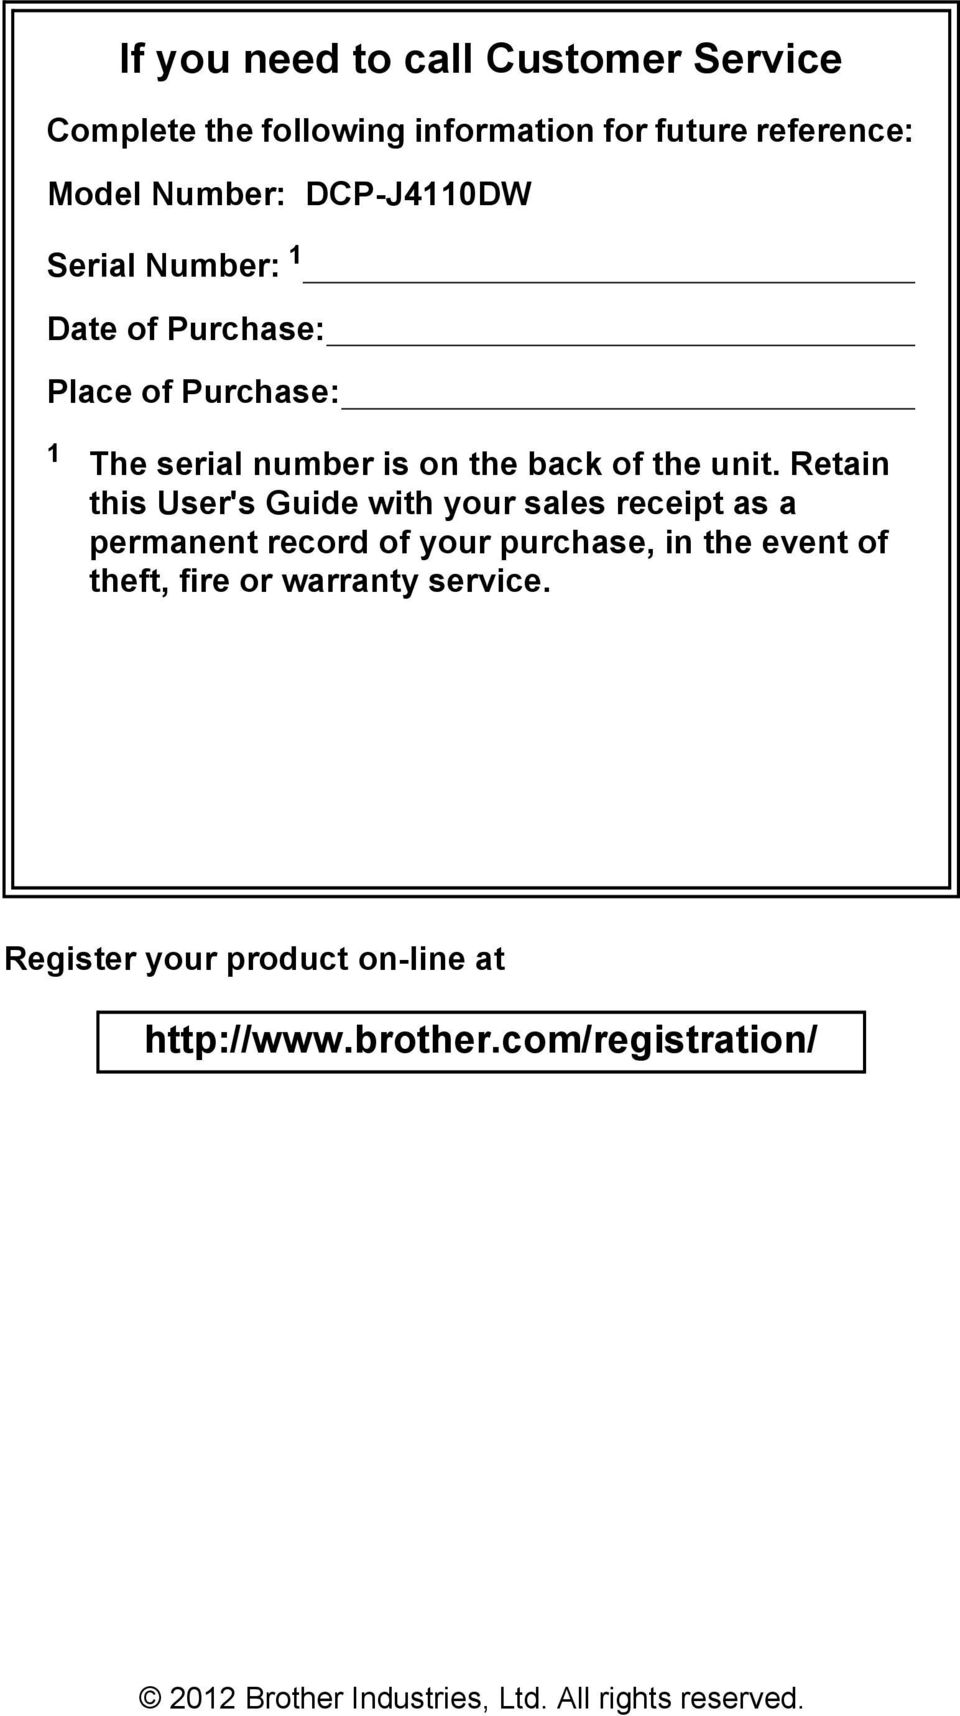 Retain this User's Guide with your sales receipt as a permanent record of your purchase, in the event of theft, fire or